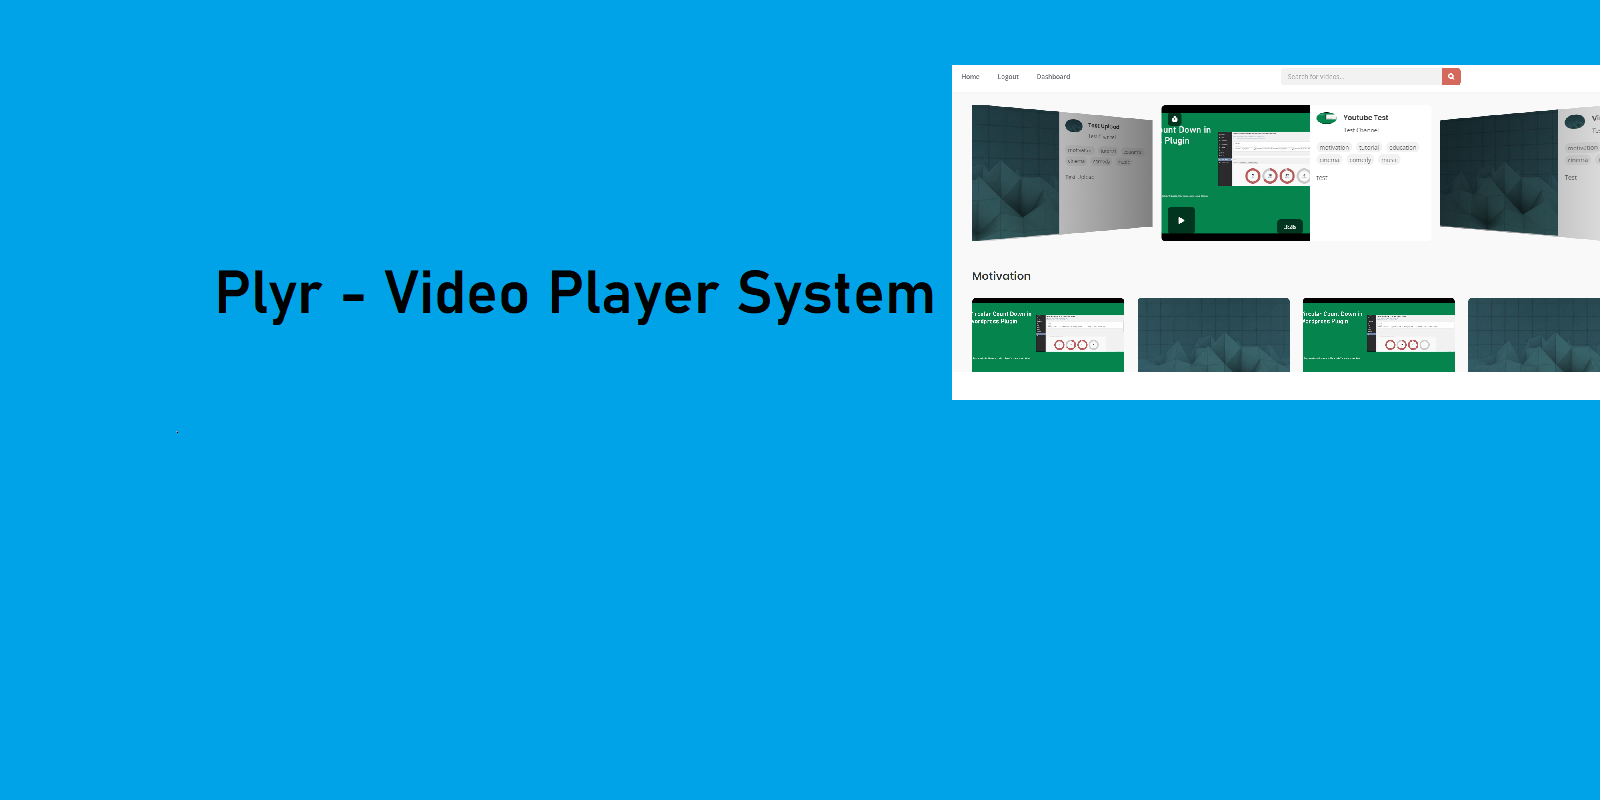 Plyr Video Player System in CodeIgniter